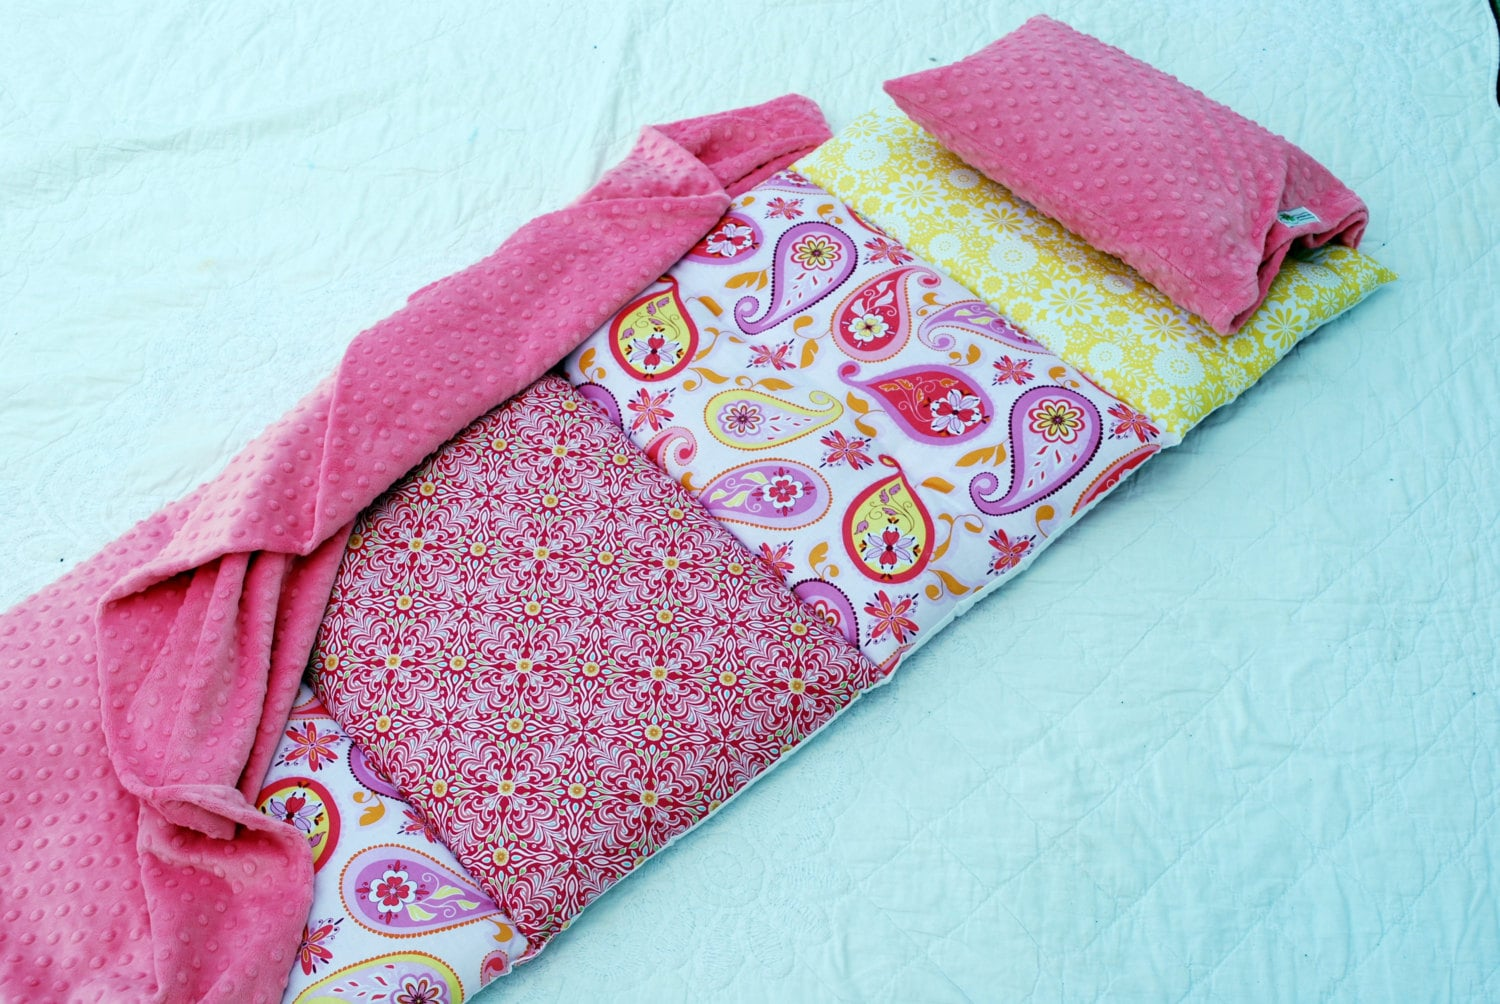 Mod Swirls Quilted Nap Mat By Janiebee Toddler Nap Mat Thick